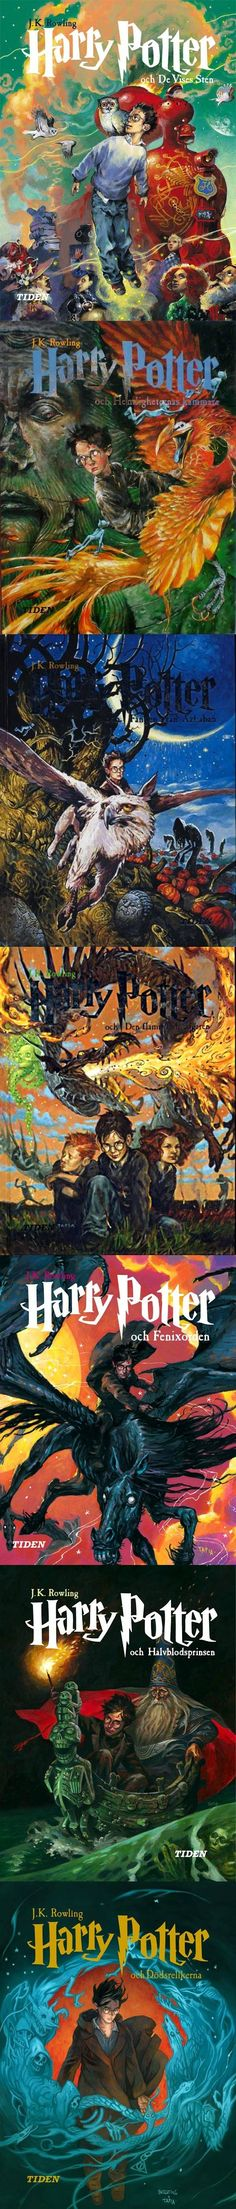 Swedish book covers for Harry Potter. They're incredibly artistic and insightful, capturing the sense of wonder, magic, and heroism Harry Potter and company live.